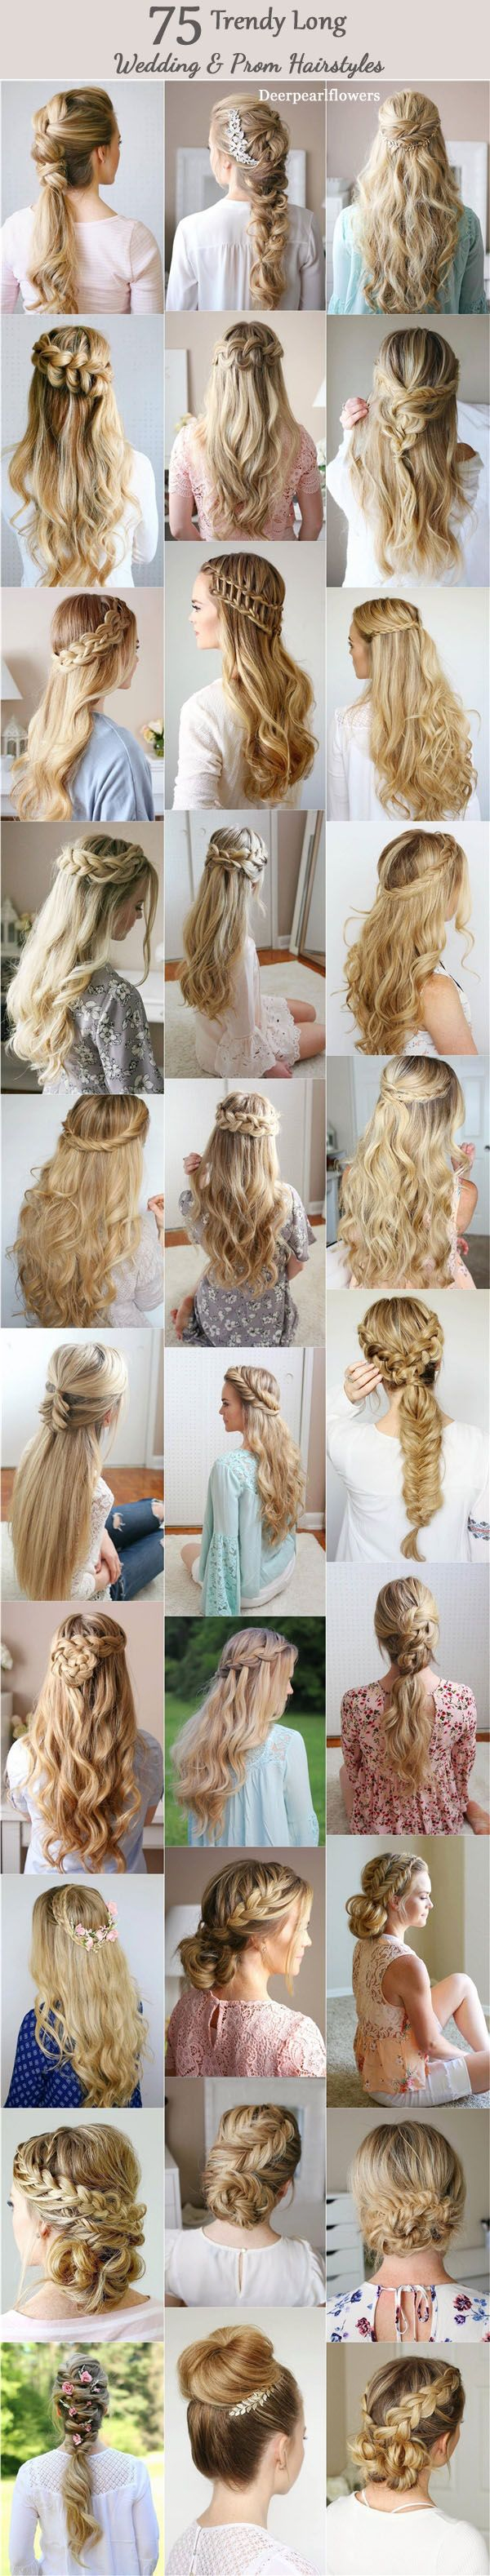 trendy long wedding u prom hairstyles to try in hair